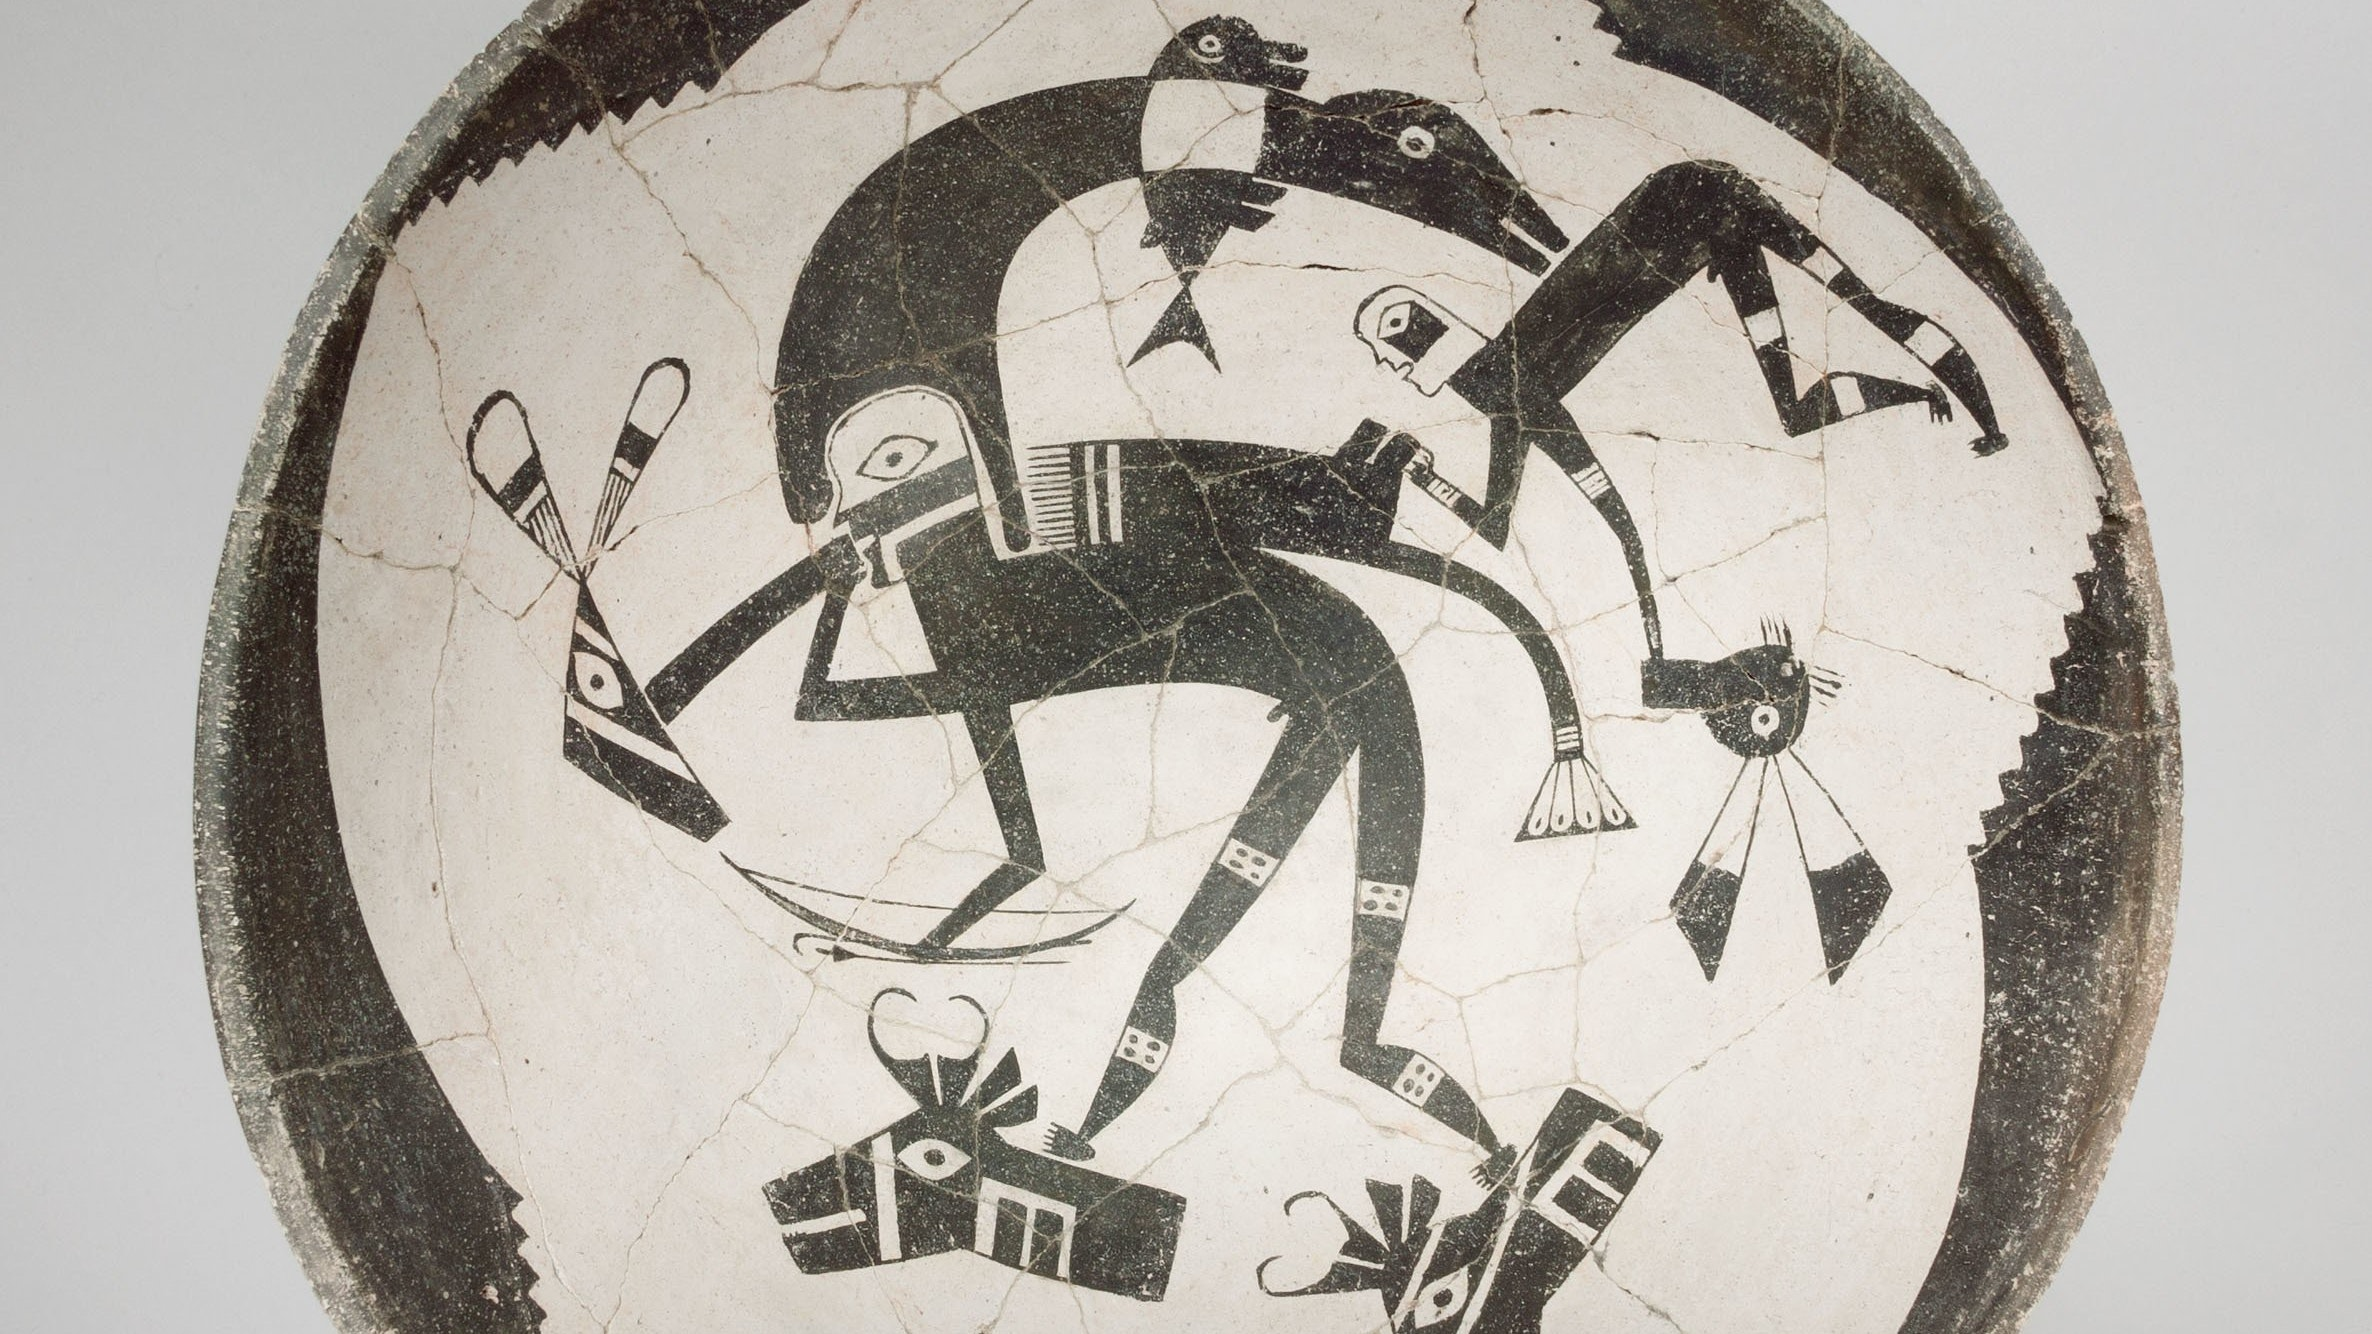 The interior of a ceramic bowl is painted in black-and-white showing a human figure with a bow and arrow and heron headress interacting with what appear to be the decapitated heads of animals.